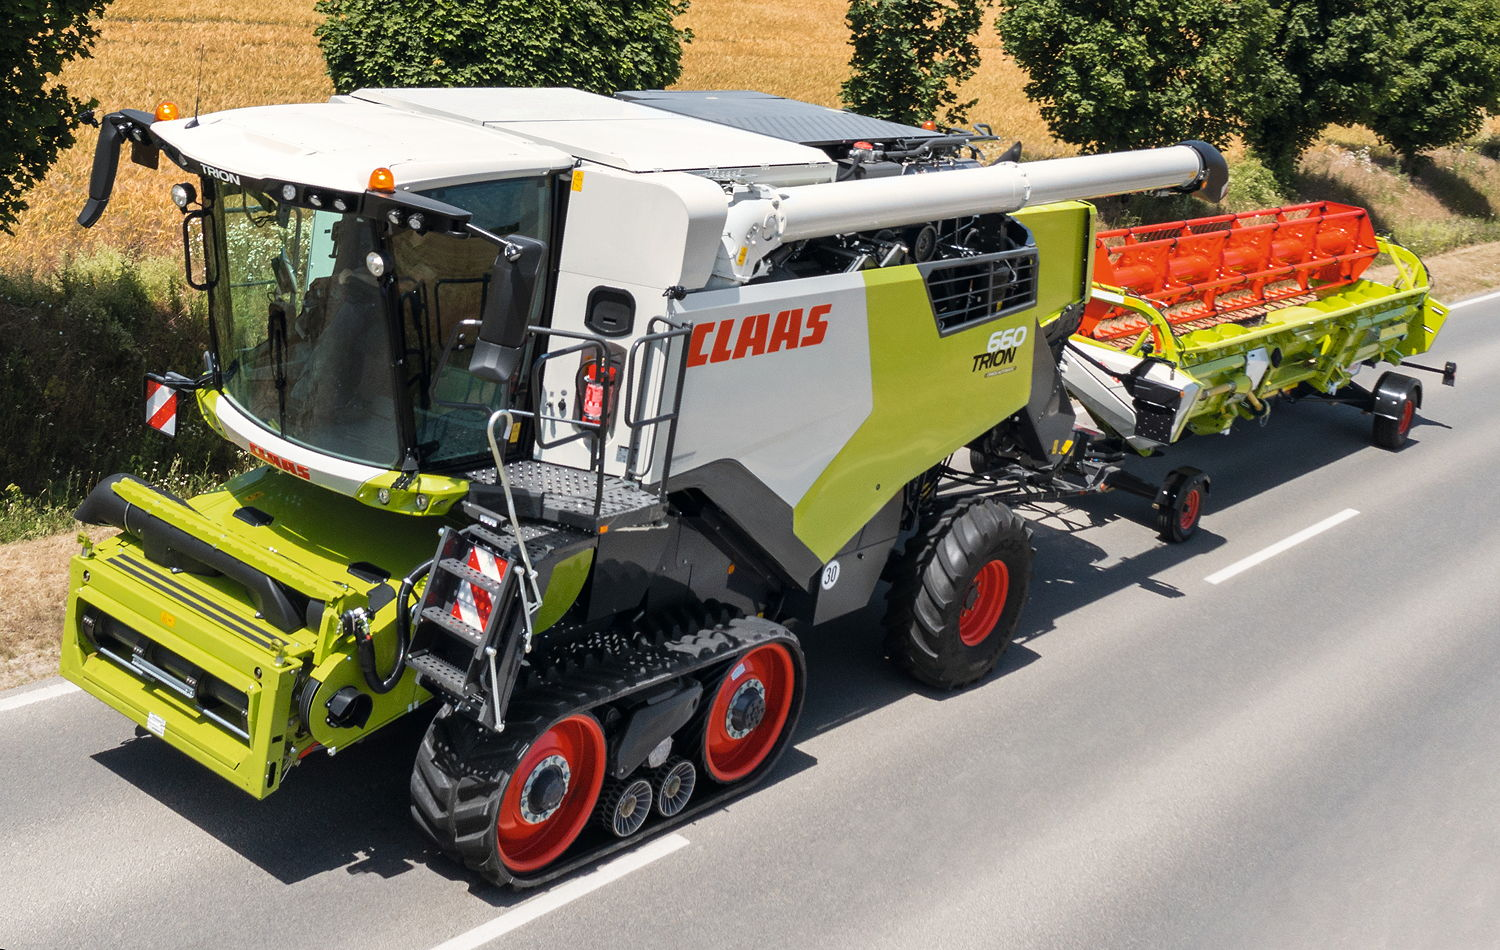 An unprecedented six models in the new Claas Trion range are available with the Terra Trac system